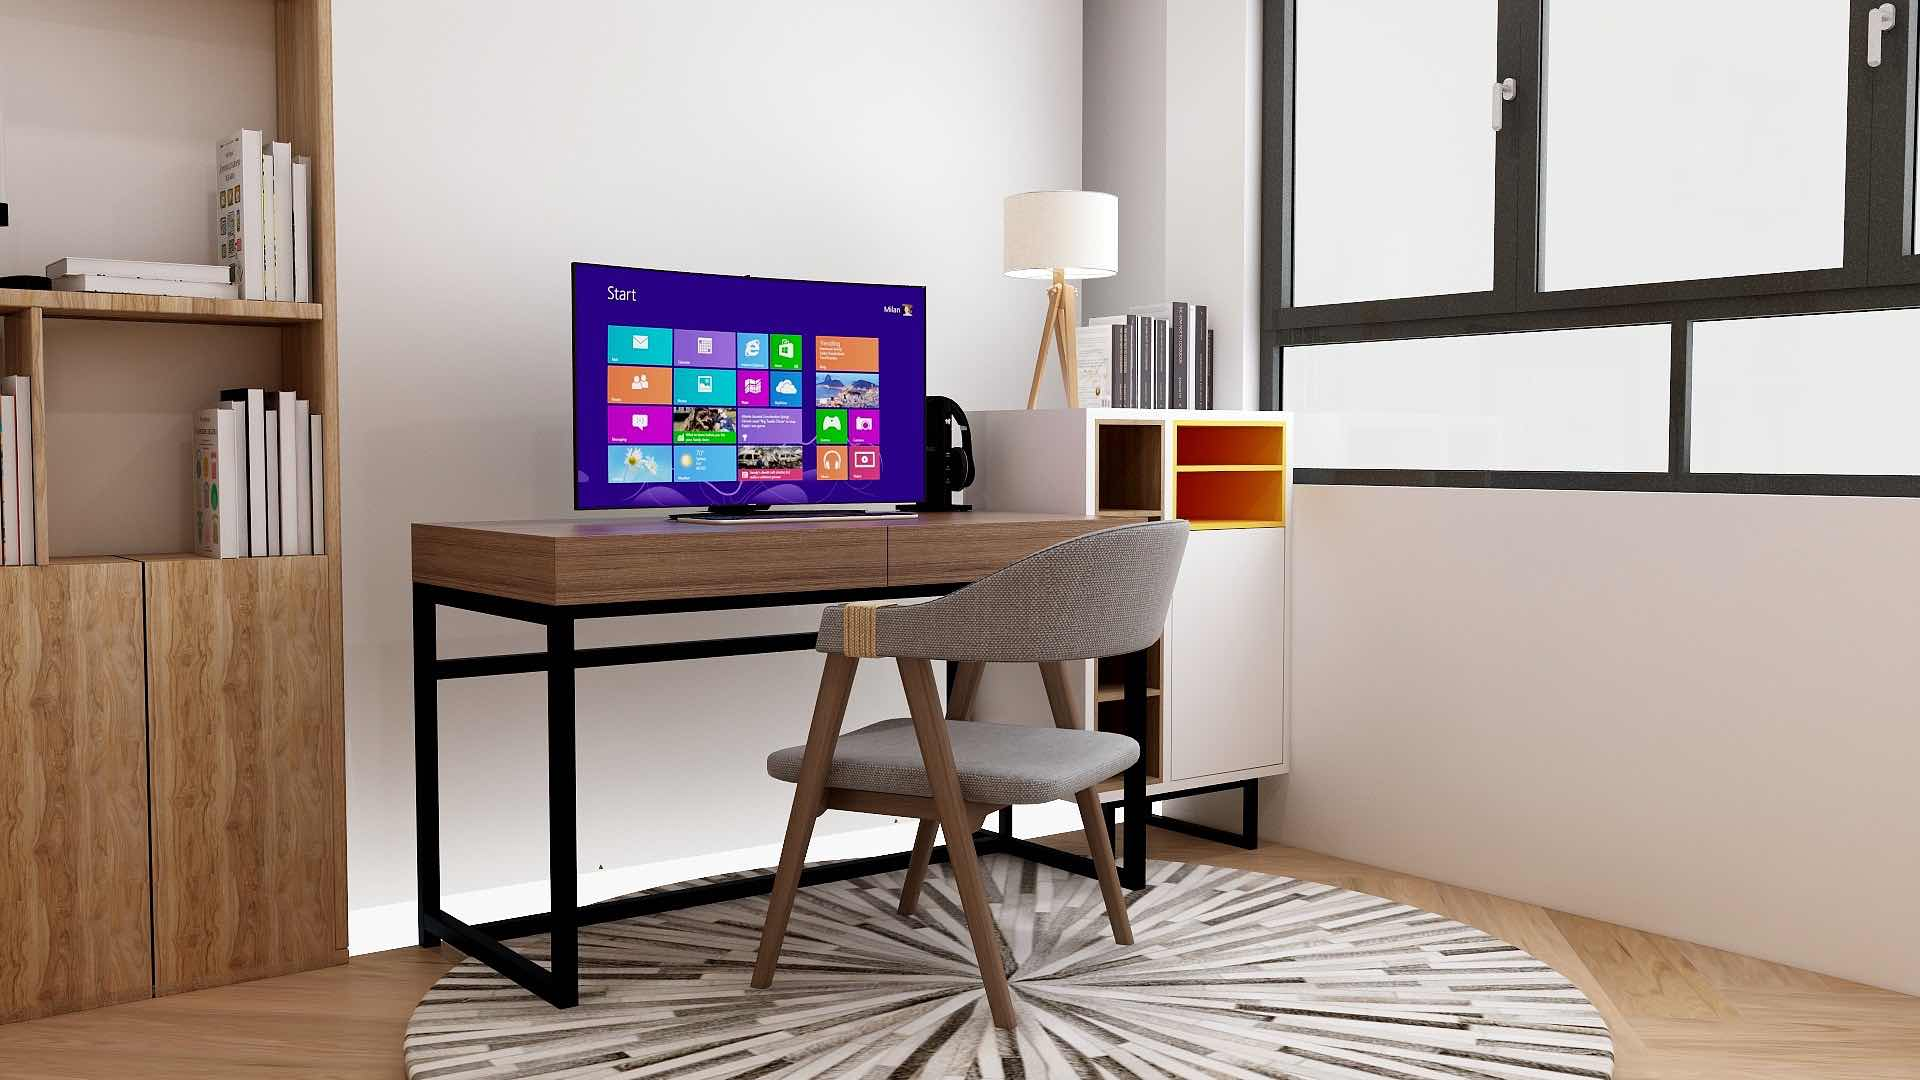 Computer screen on wooden study table with modern chair in a study room